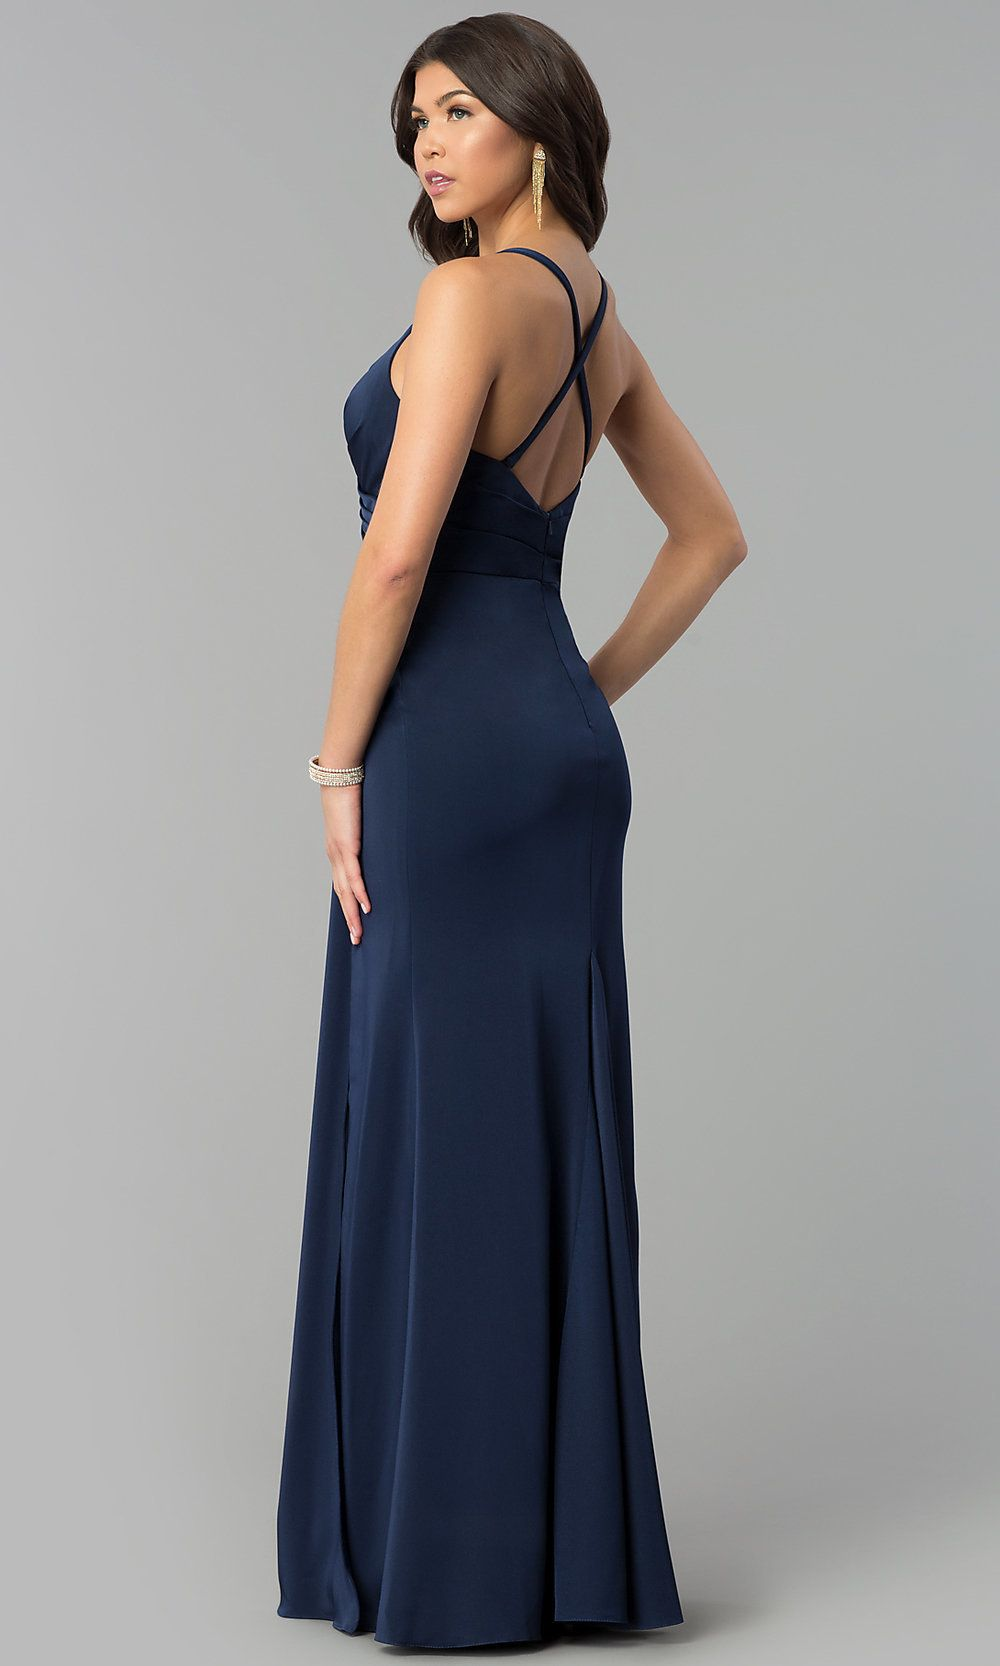 7118a5a9cf9 V-Neck Long Mock-Wrap Prom Dress - PromGirl